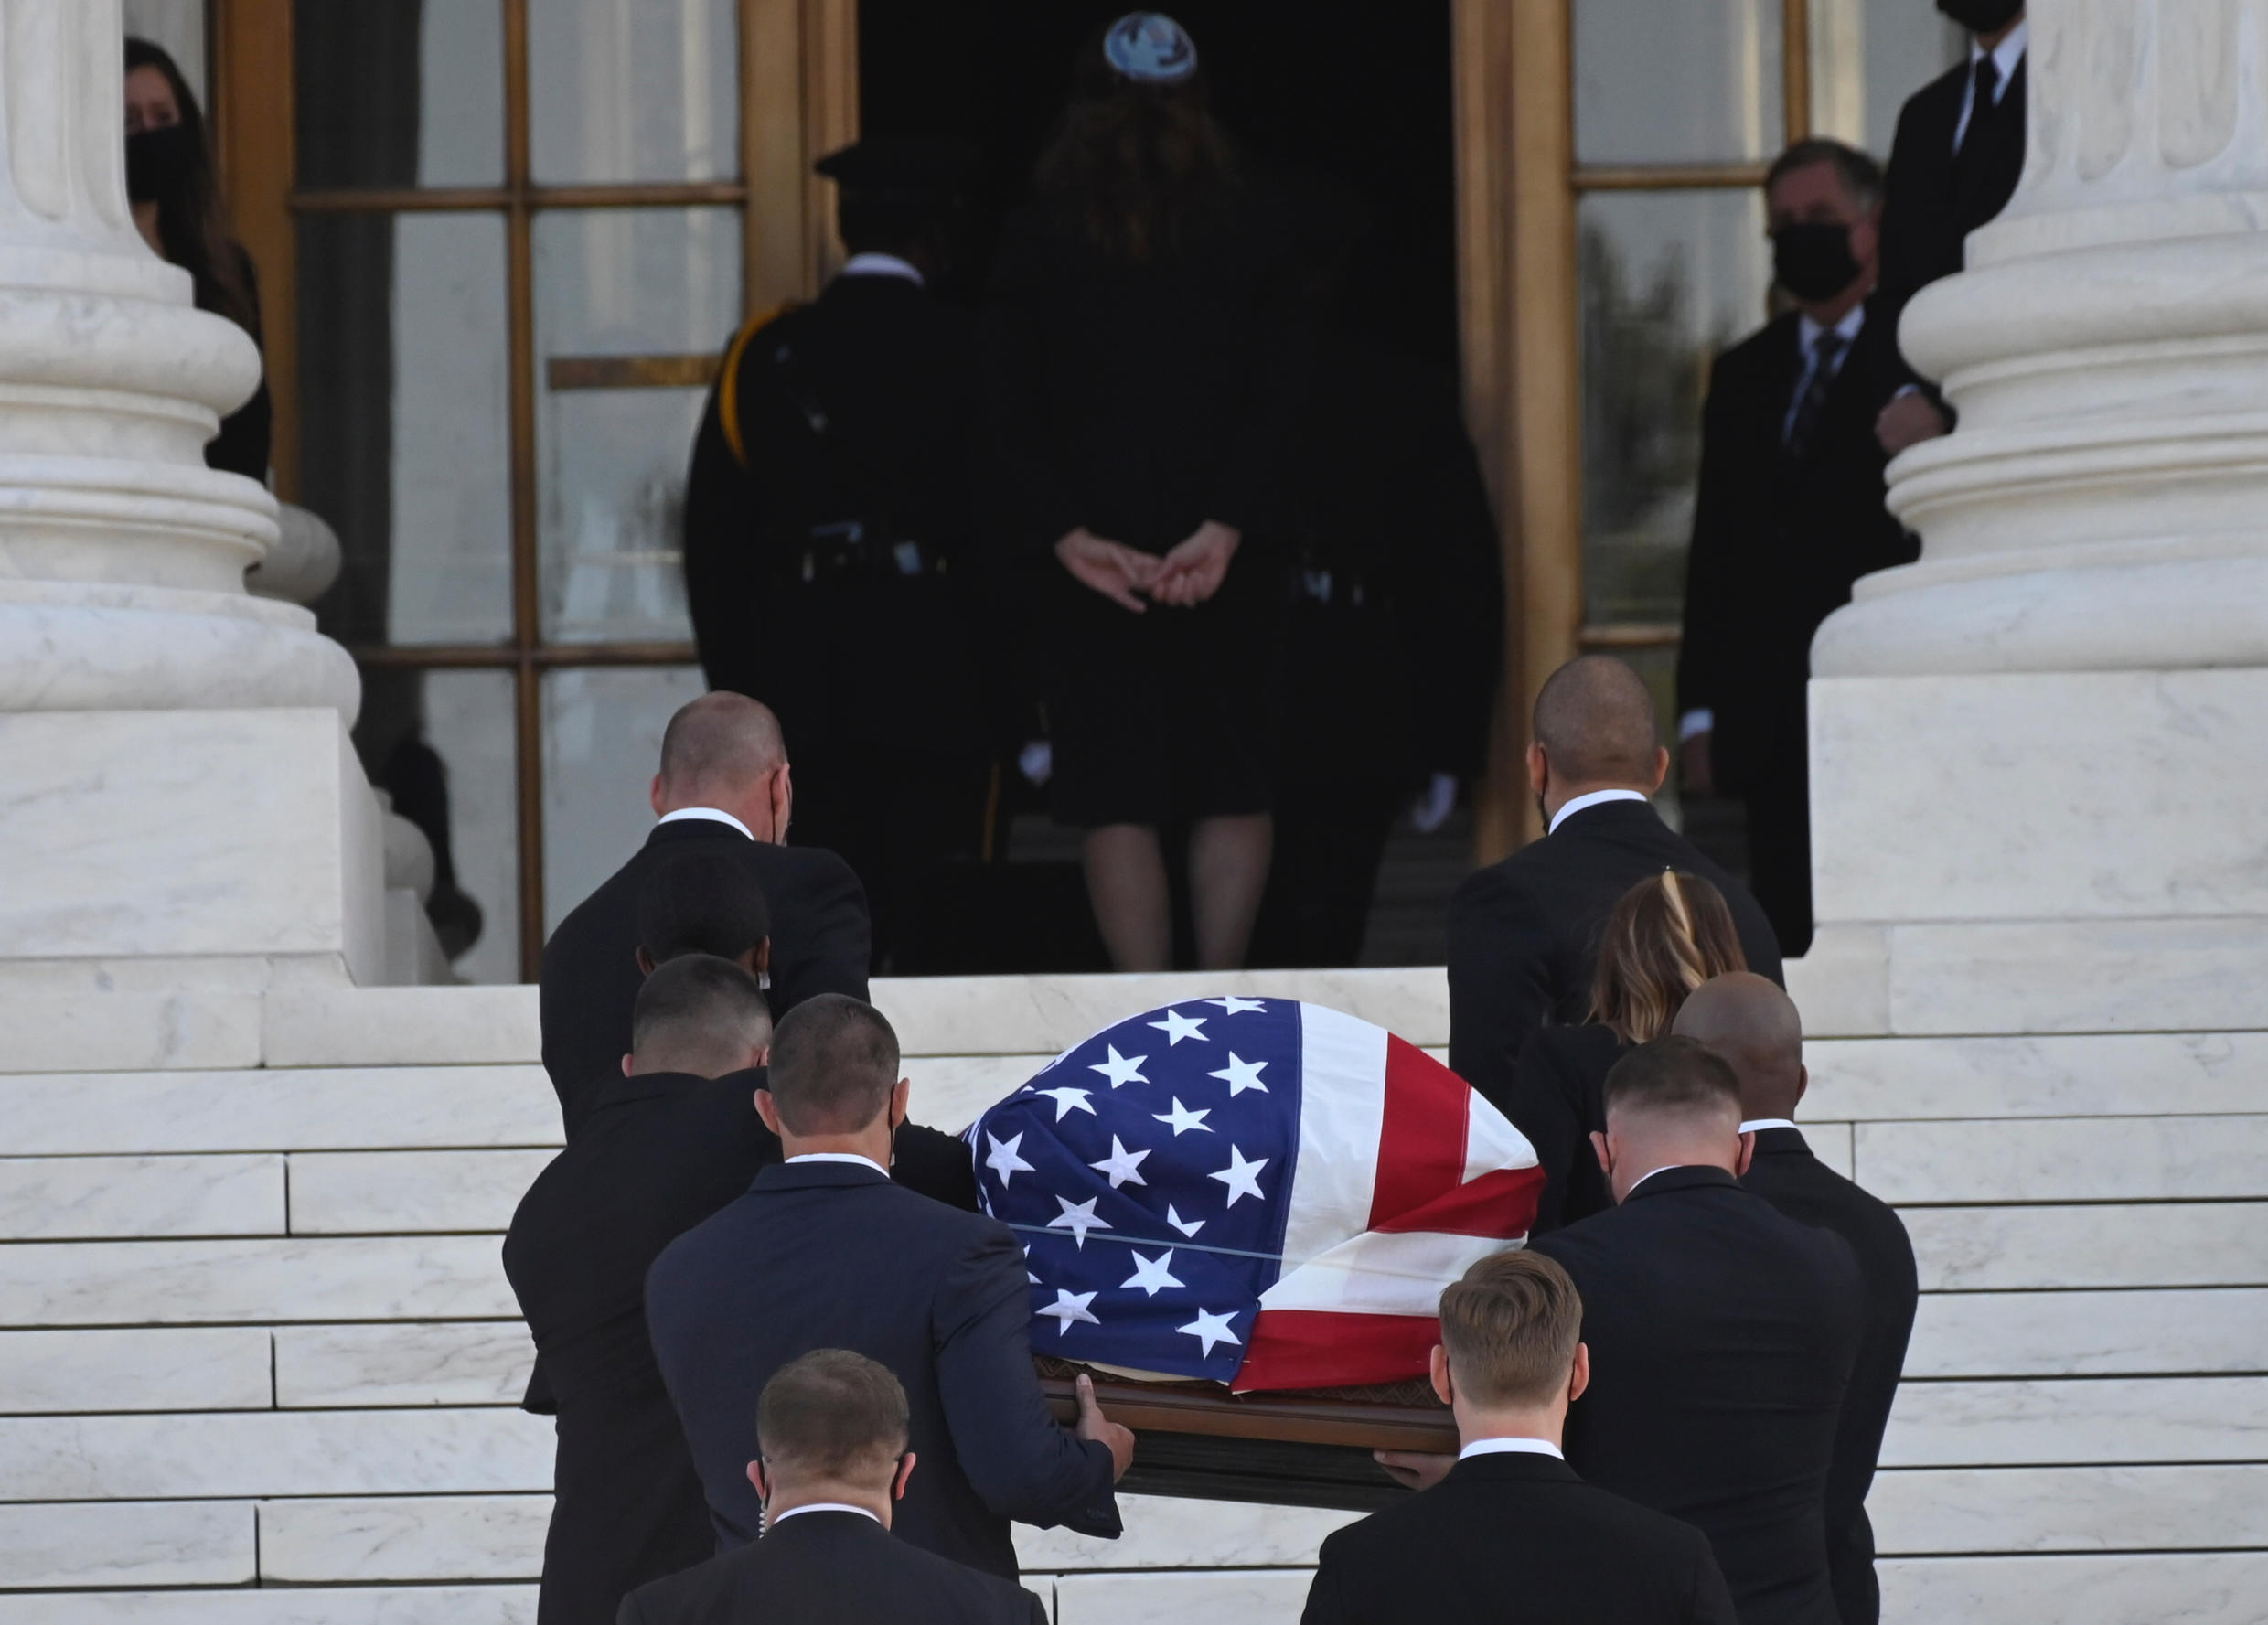 The flag-draped casket of the late US Supreme Court Justice Ruth Bader Ginsburg arrives at the US Supreme Court in Washington, DC